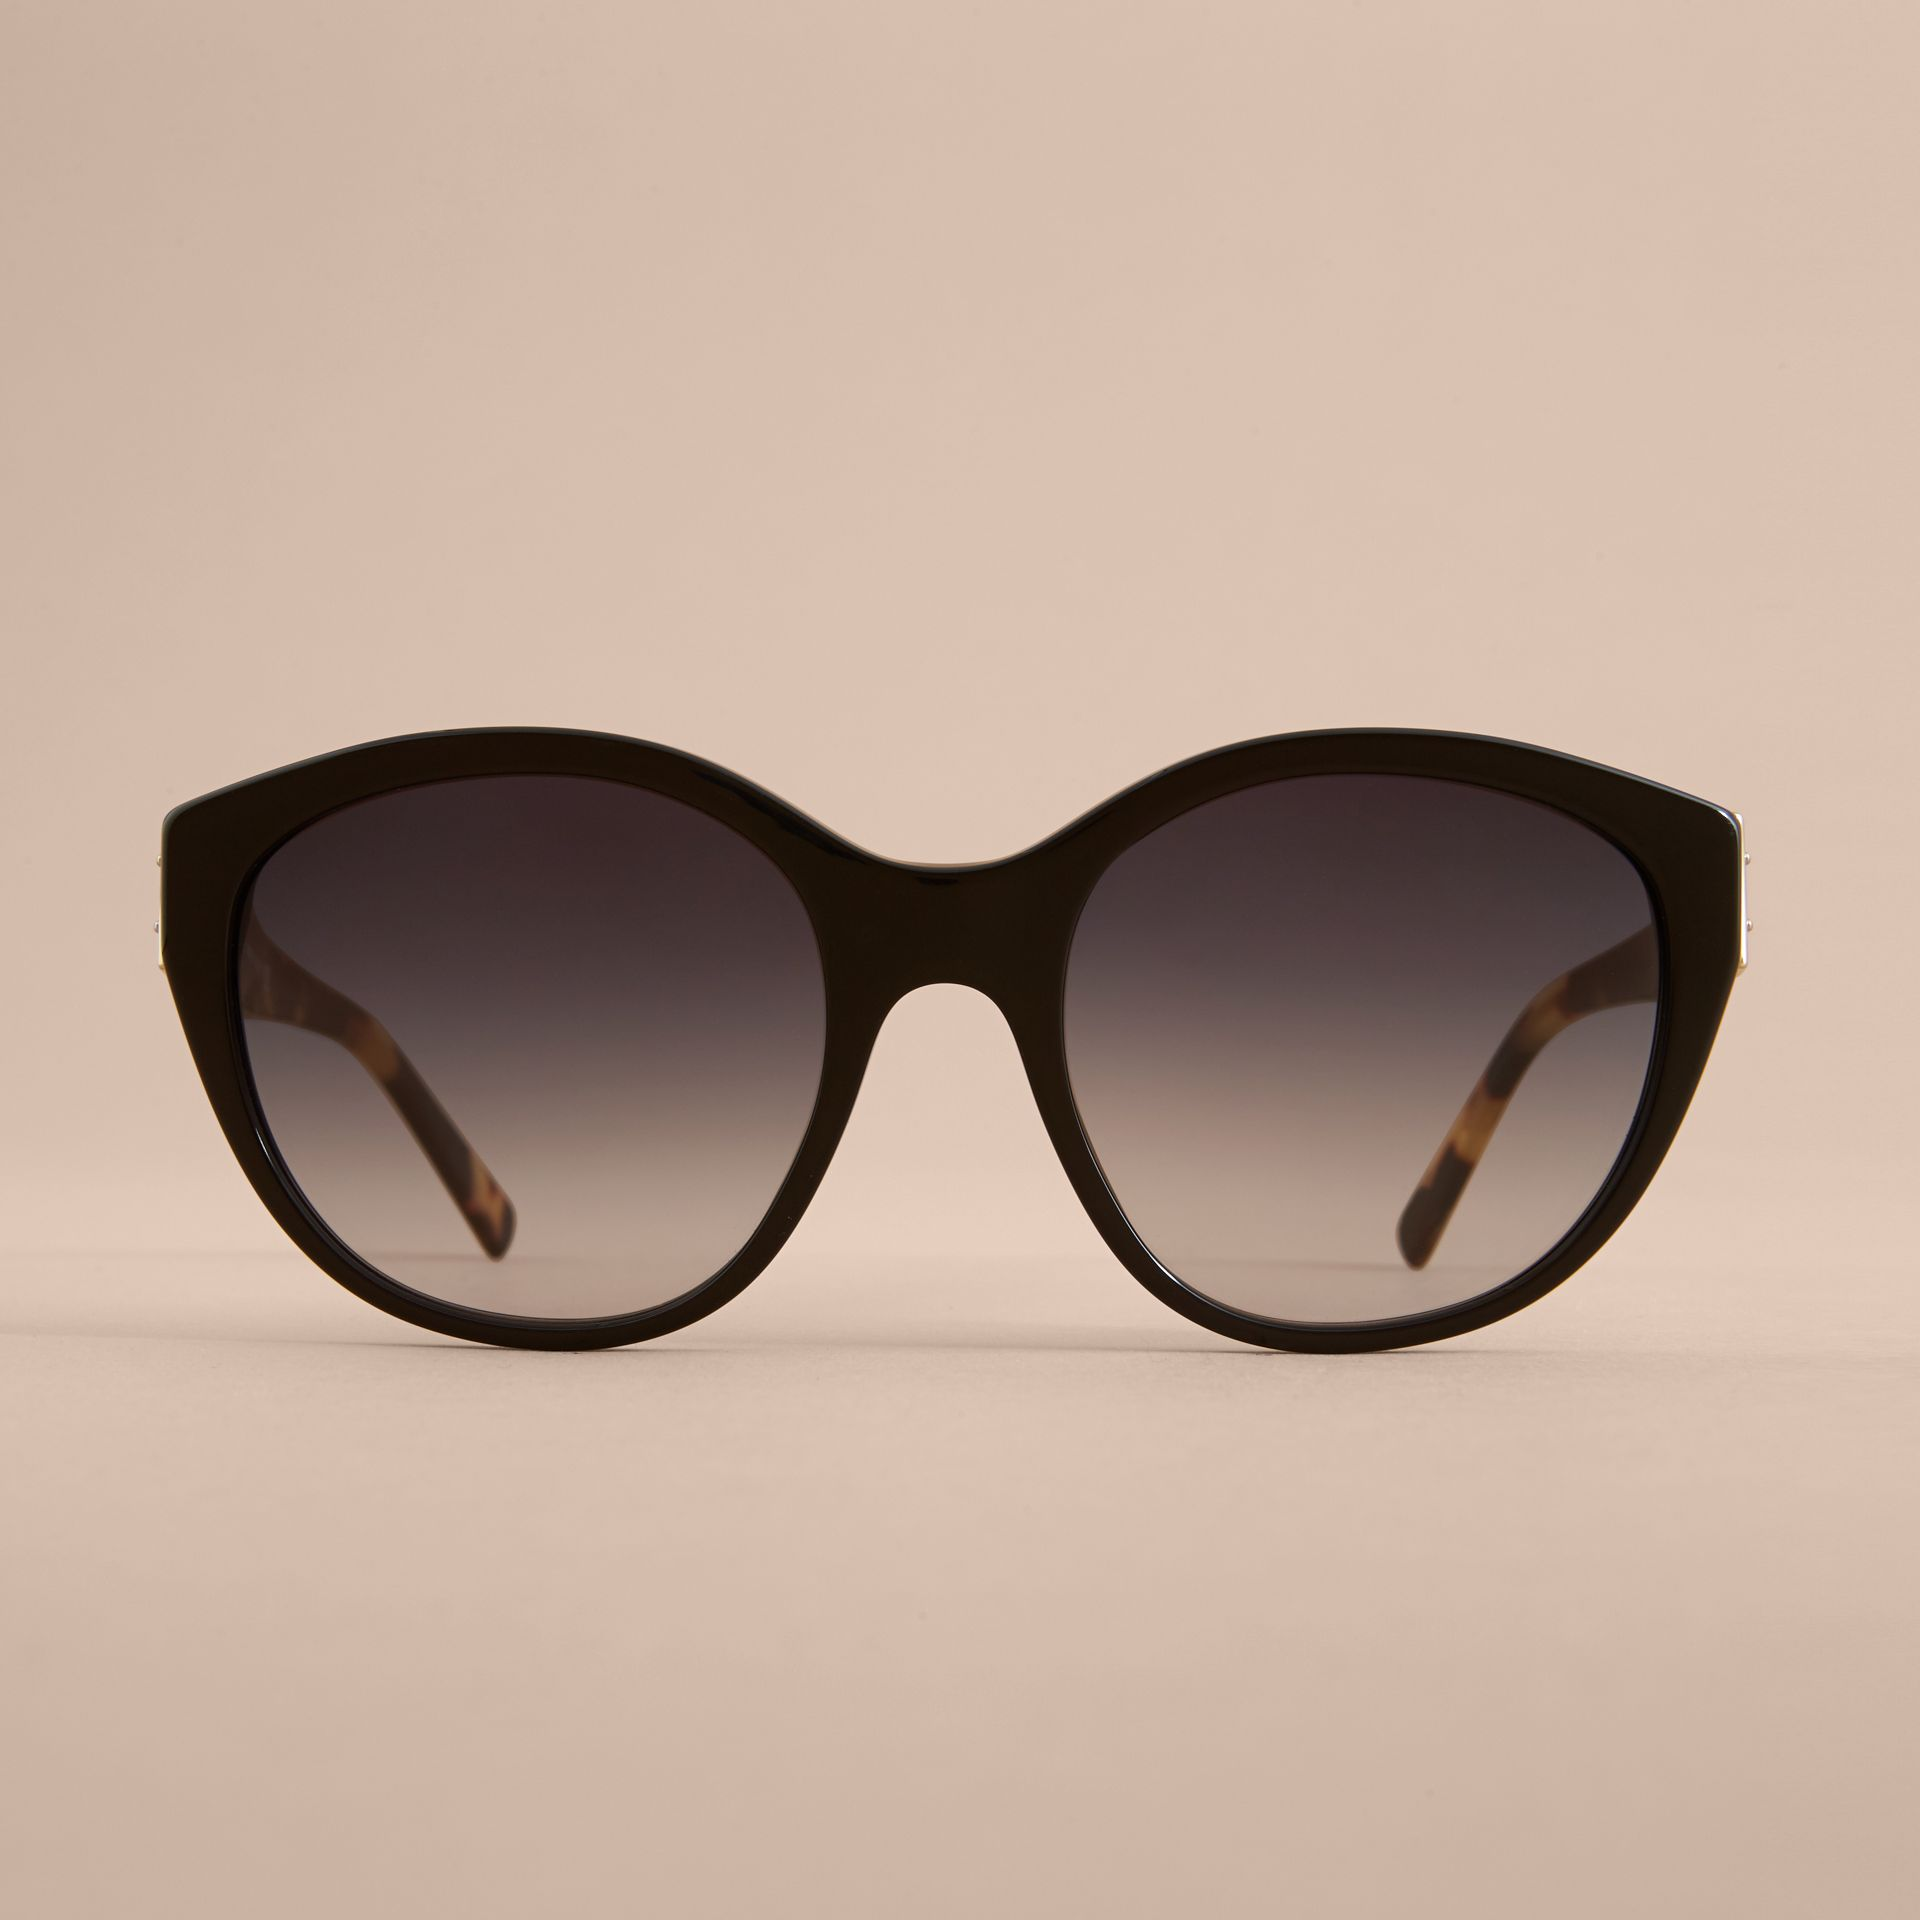 Buckle Detail Round Frame Sunglasses in Black - Women | Burberry United States - gallery image 3